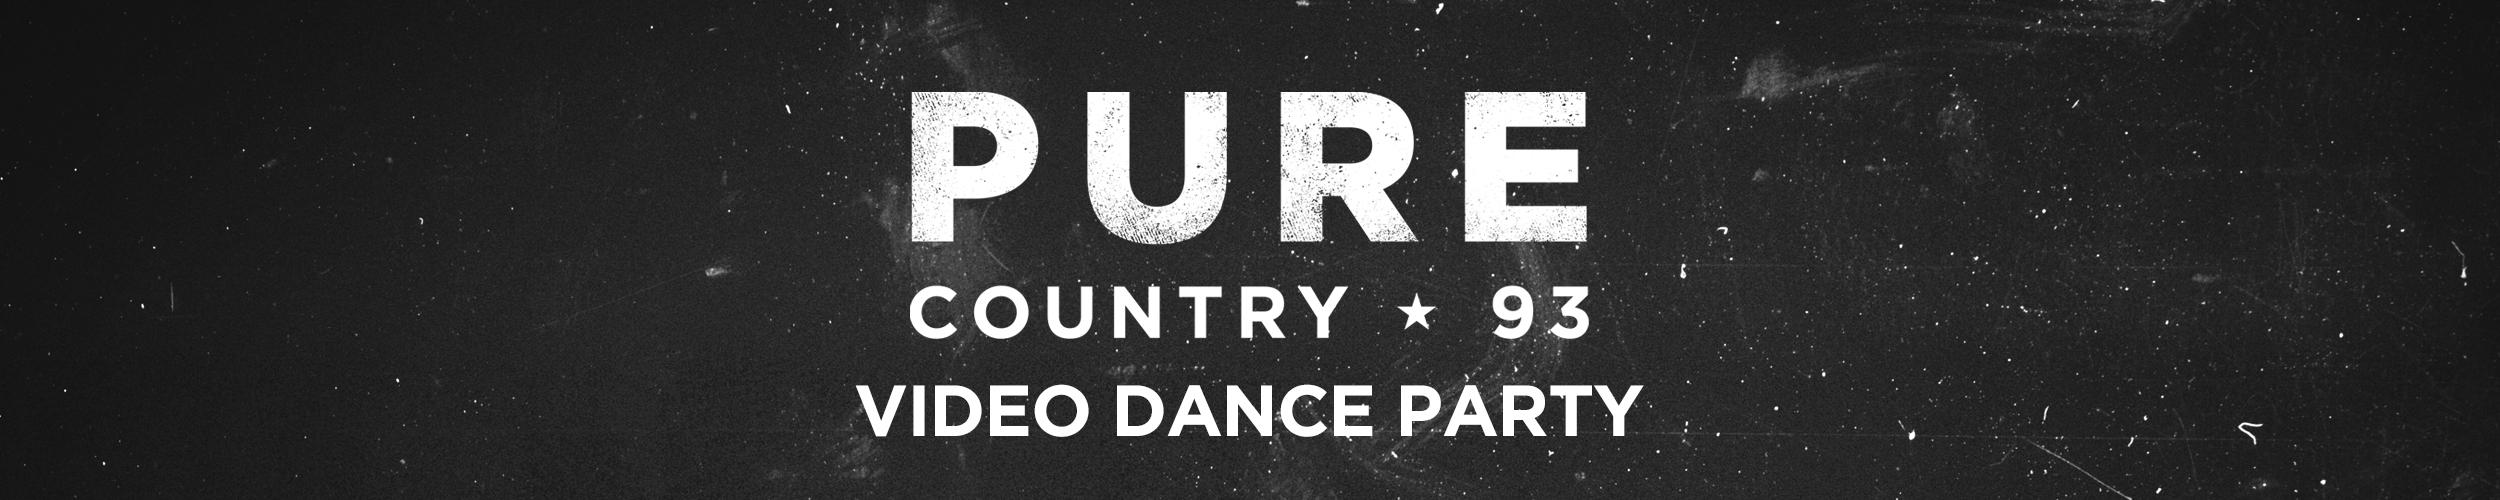 Pure Country 103 Video Dance Party